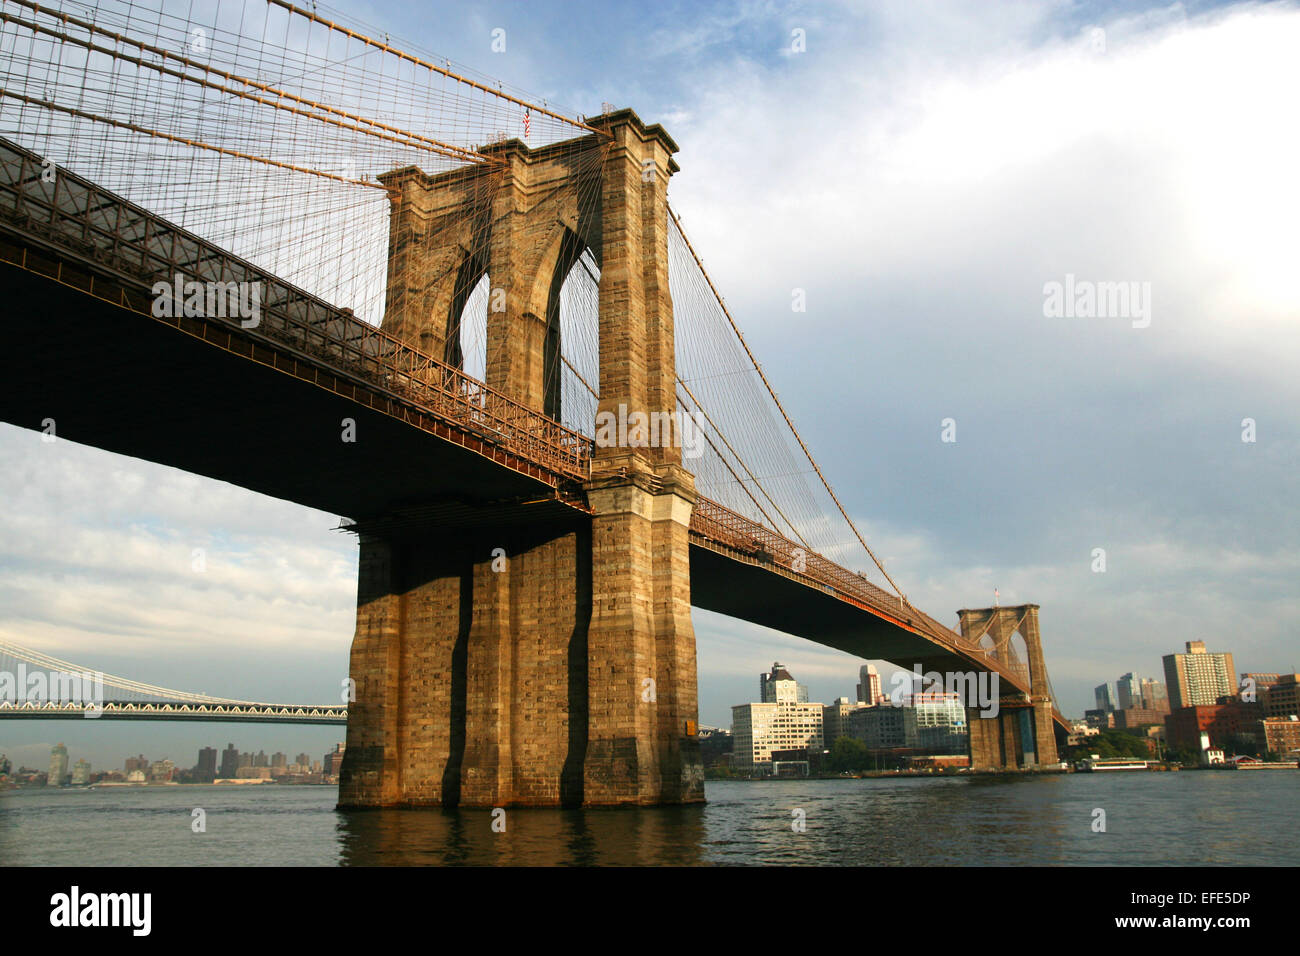 Brooklyn Bridge New York - Stock Image